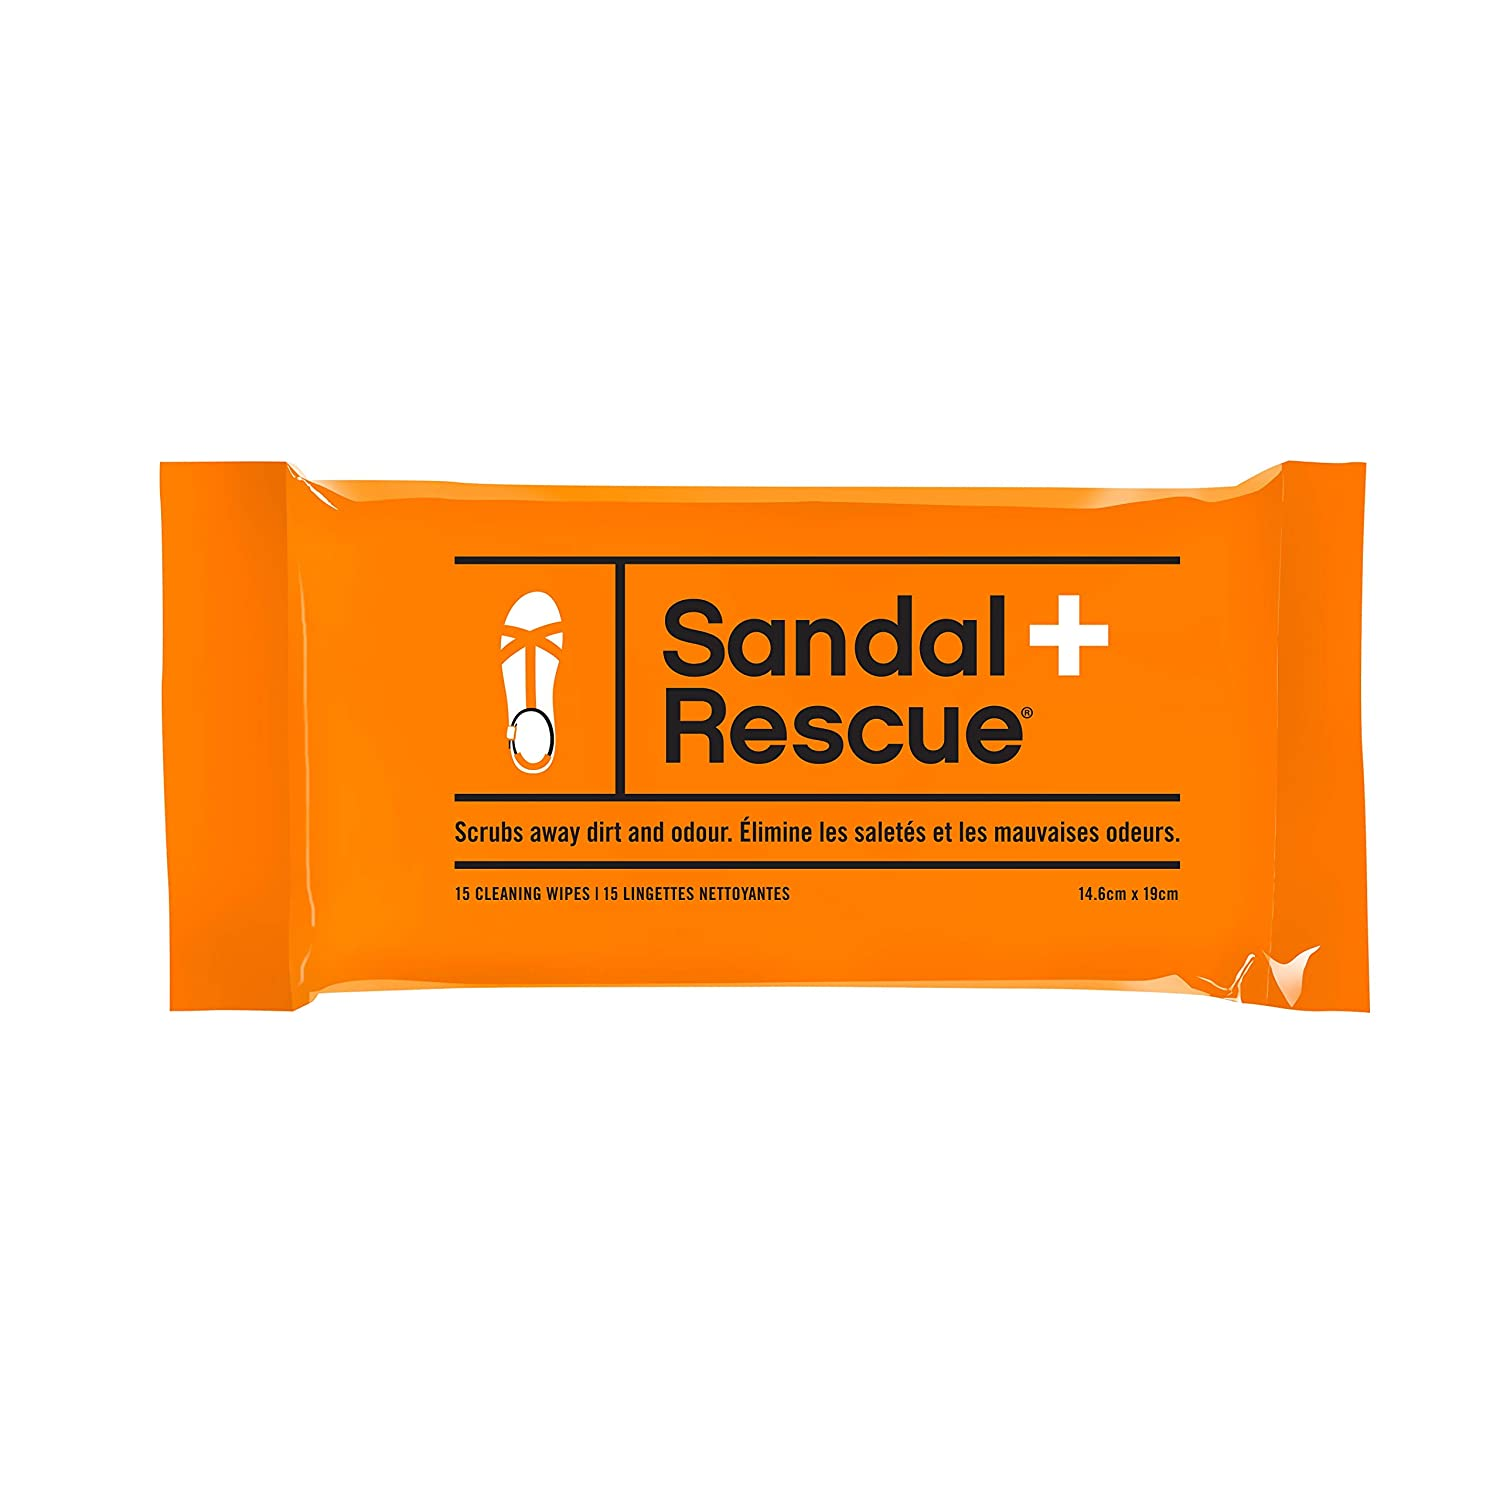 【驚きの値段】 sandalrescue Cleans all-natural Wipes Textured Cleaning Wipes forレザーorスエード。中敷きScrubs Off汚れ Over。15パック。、オイルFootprints and Cleans All Over。15パック。 B01N23SC4M, イズミク:e9eb3b26 --- a0267596.xsph.ru